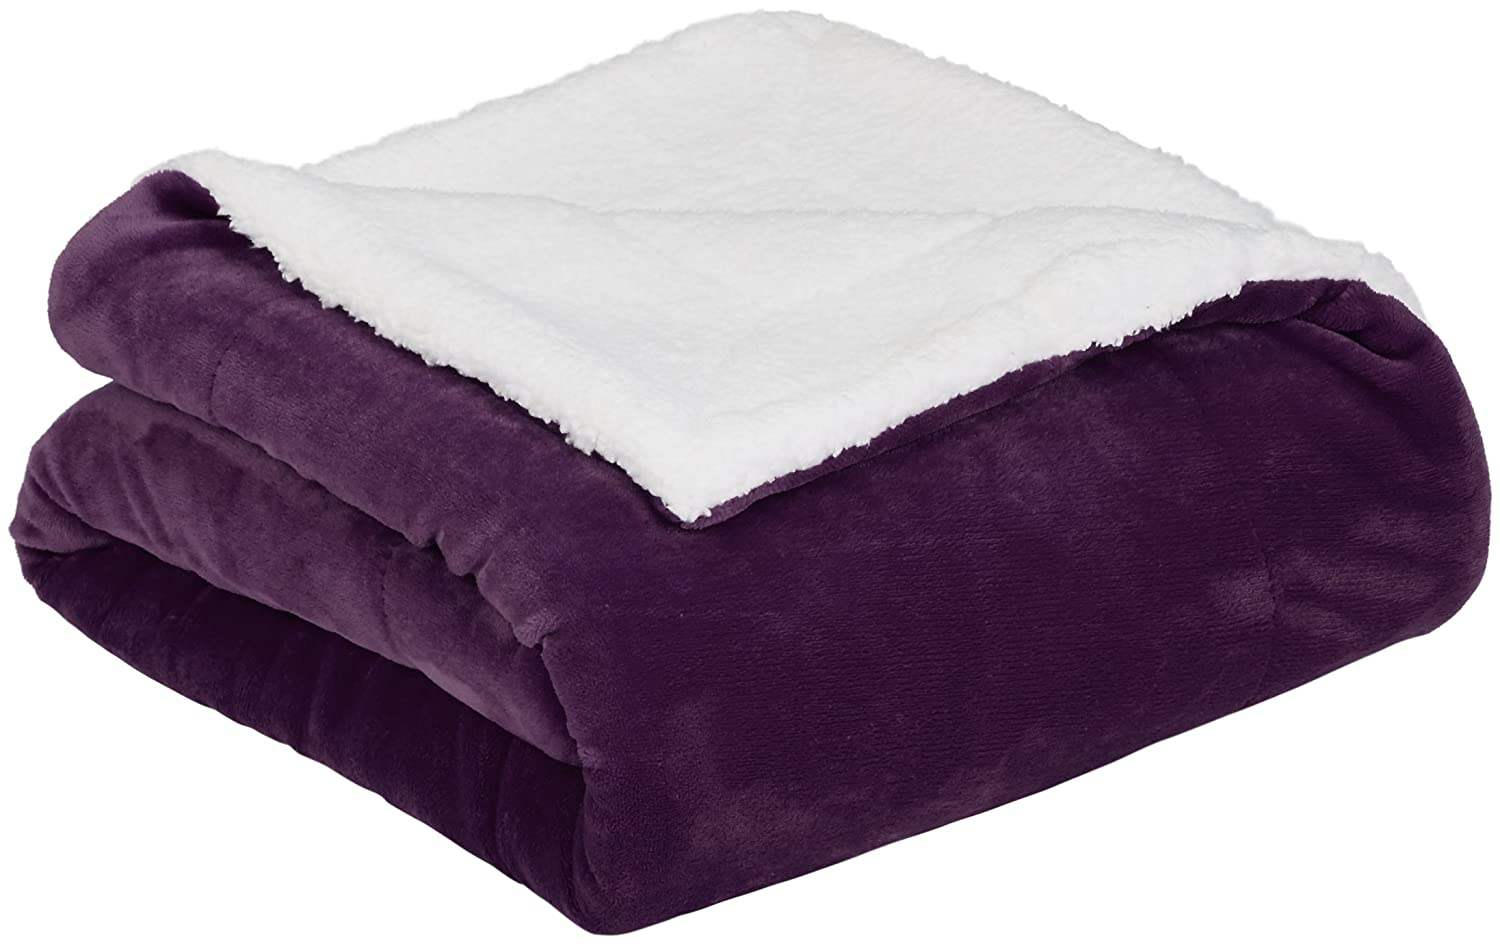 AmazonBasics Soft Micromink Sherpa Blanket - Throw, Plum